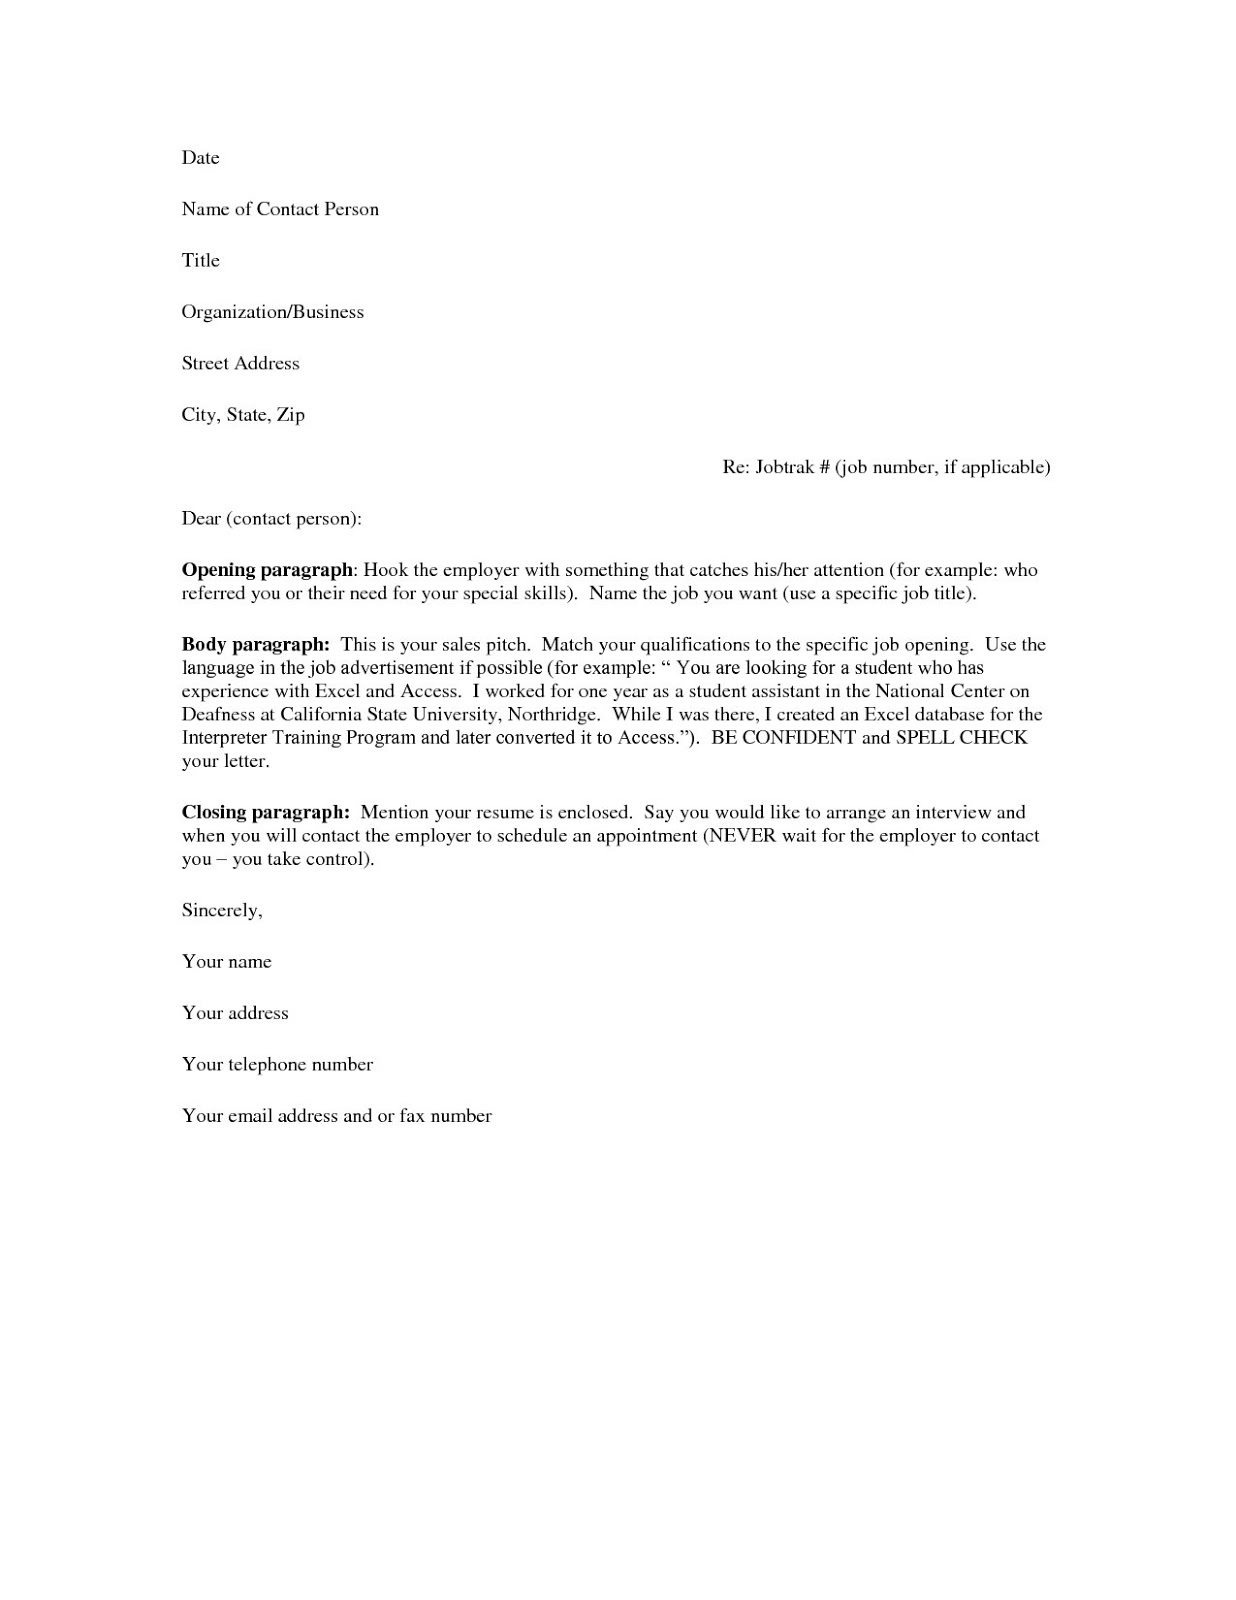 cover letter example for resumes free - Cover Letter Examples For Resumes Free